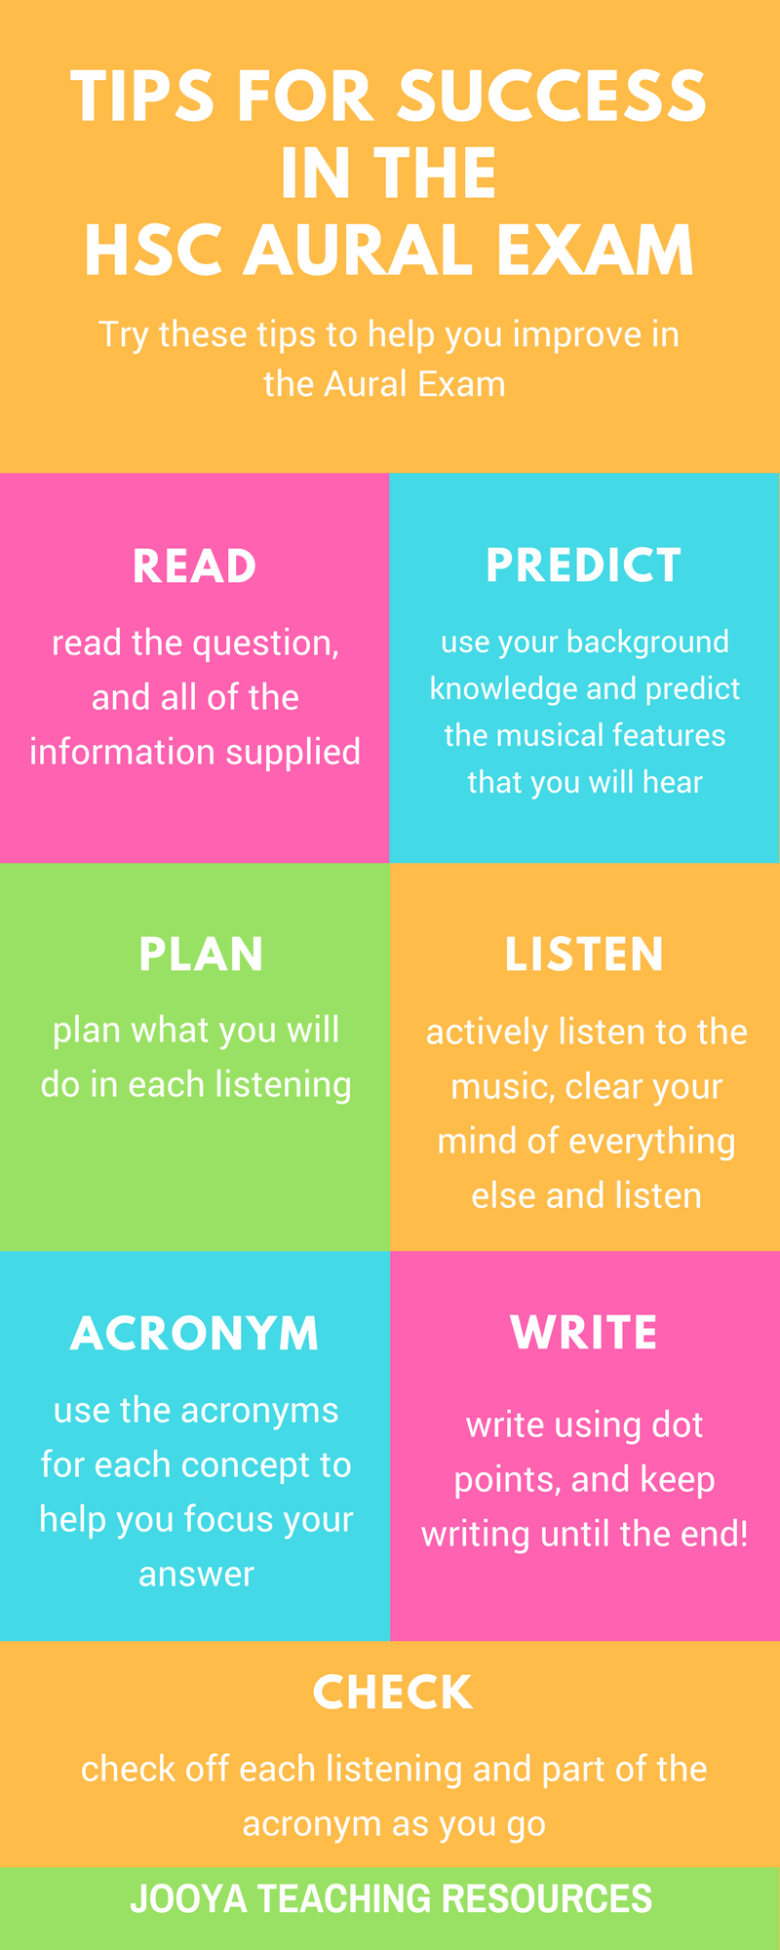 Blog Post on the HSC Music 1 Aural Exam Resources by Jooya Teaching Resources. Strategies and resources to help both staff and students navigate the exam.